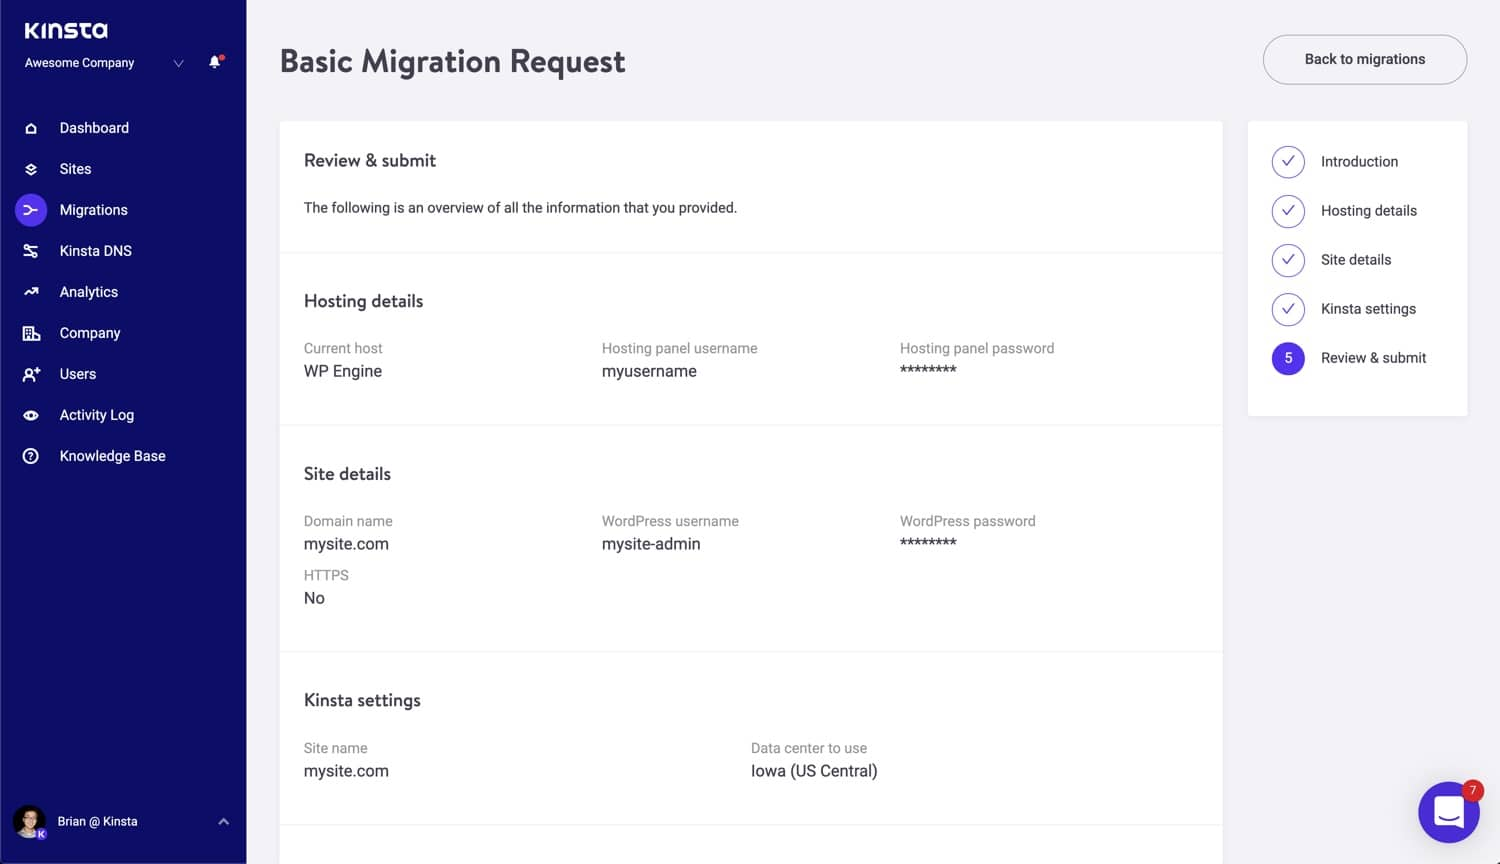 Review and submit your basic migration.